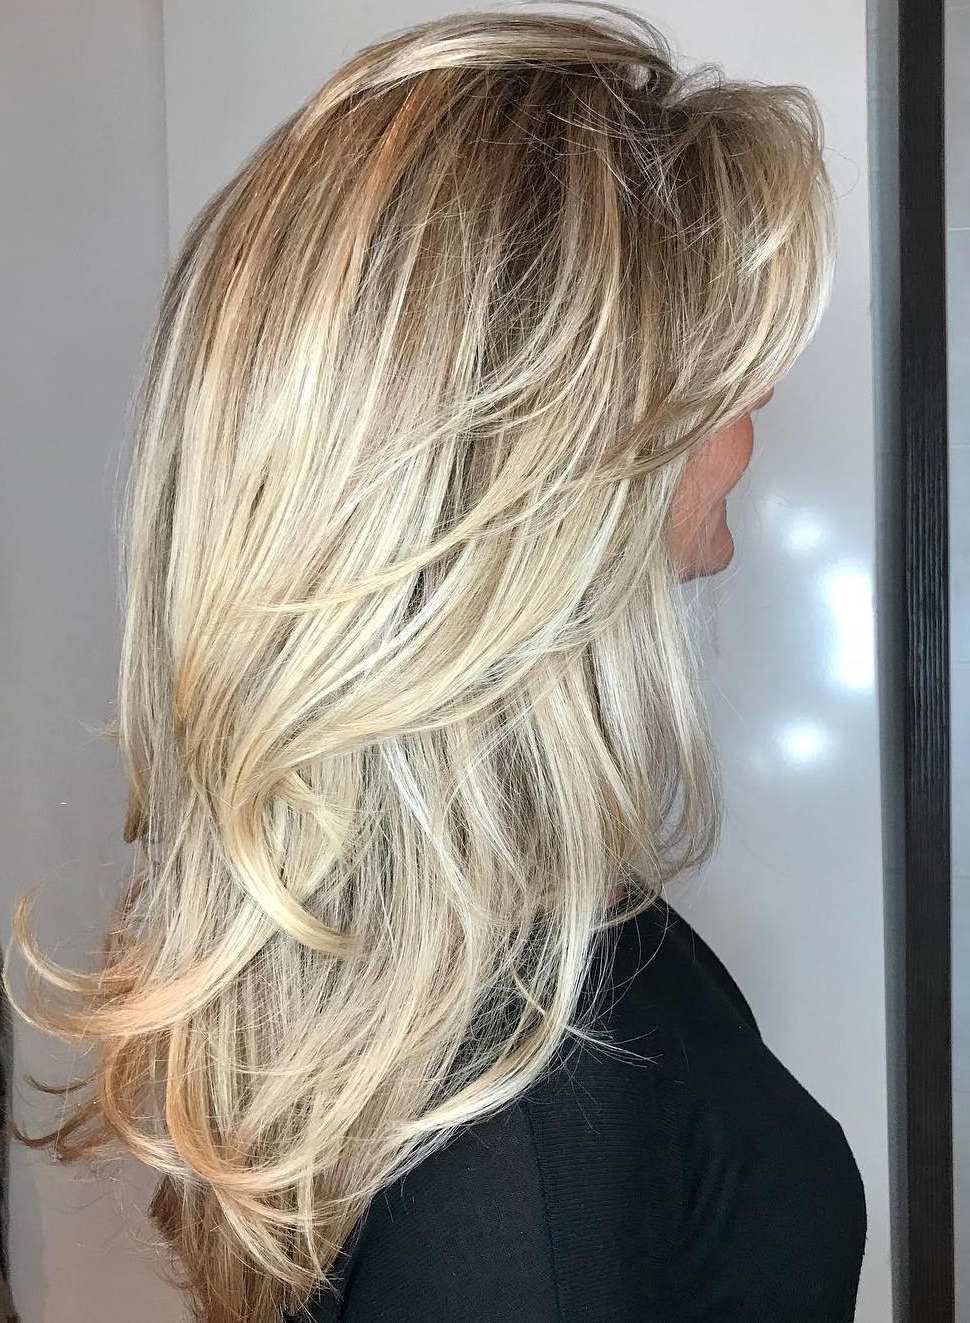 Famous Long Layered Waves And Cute Bangs Hairstyles Inside 50 Cute Long Layered Haircuts With Bangs (View 5 of 20)